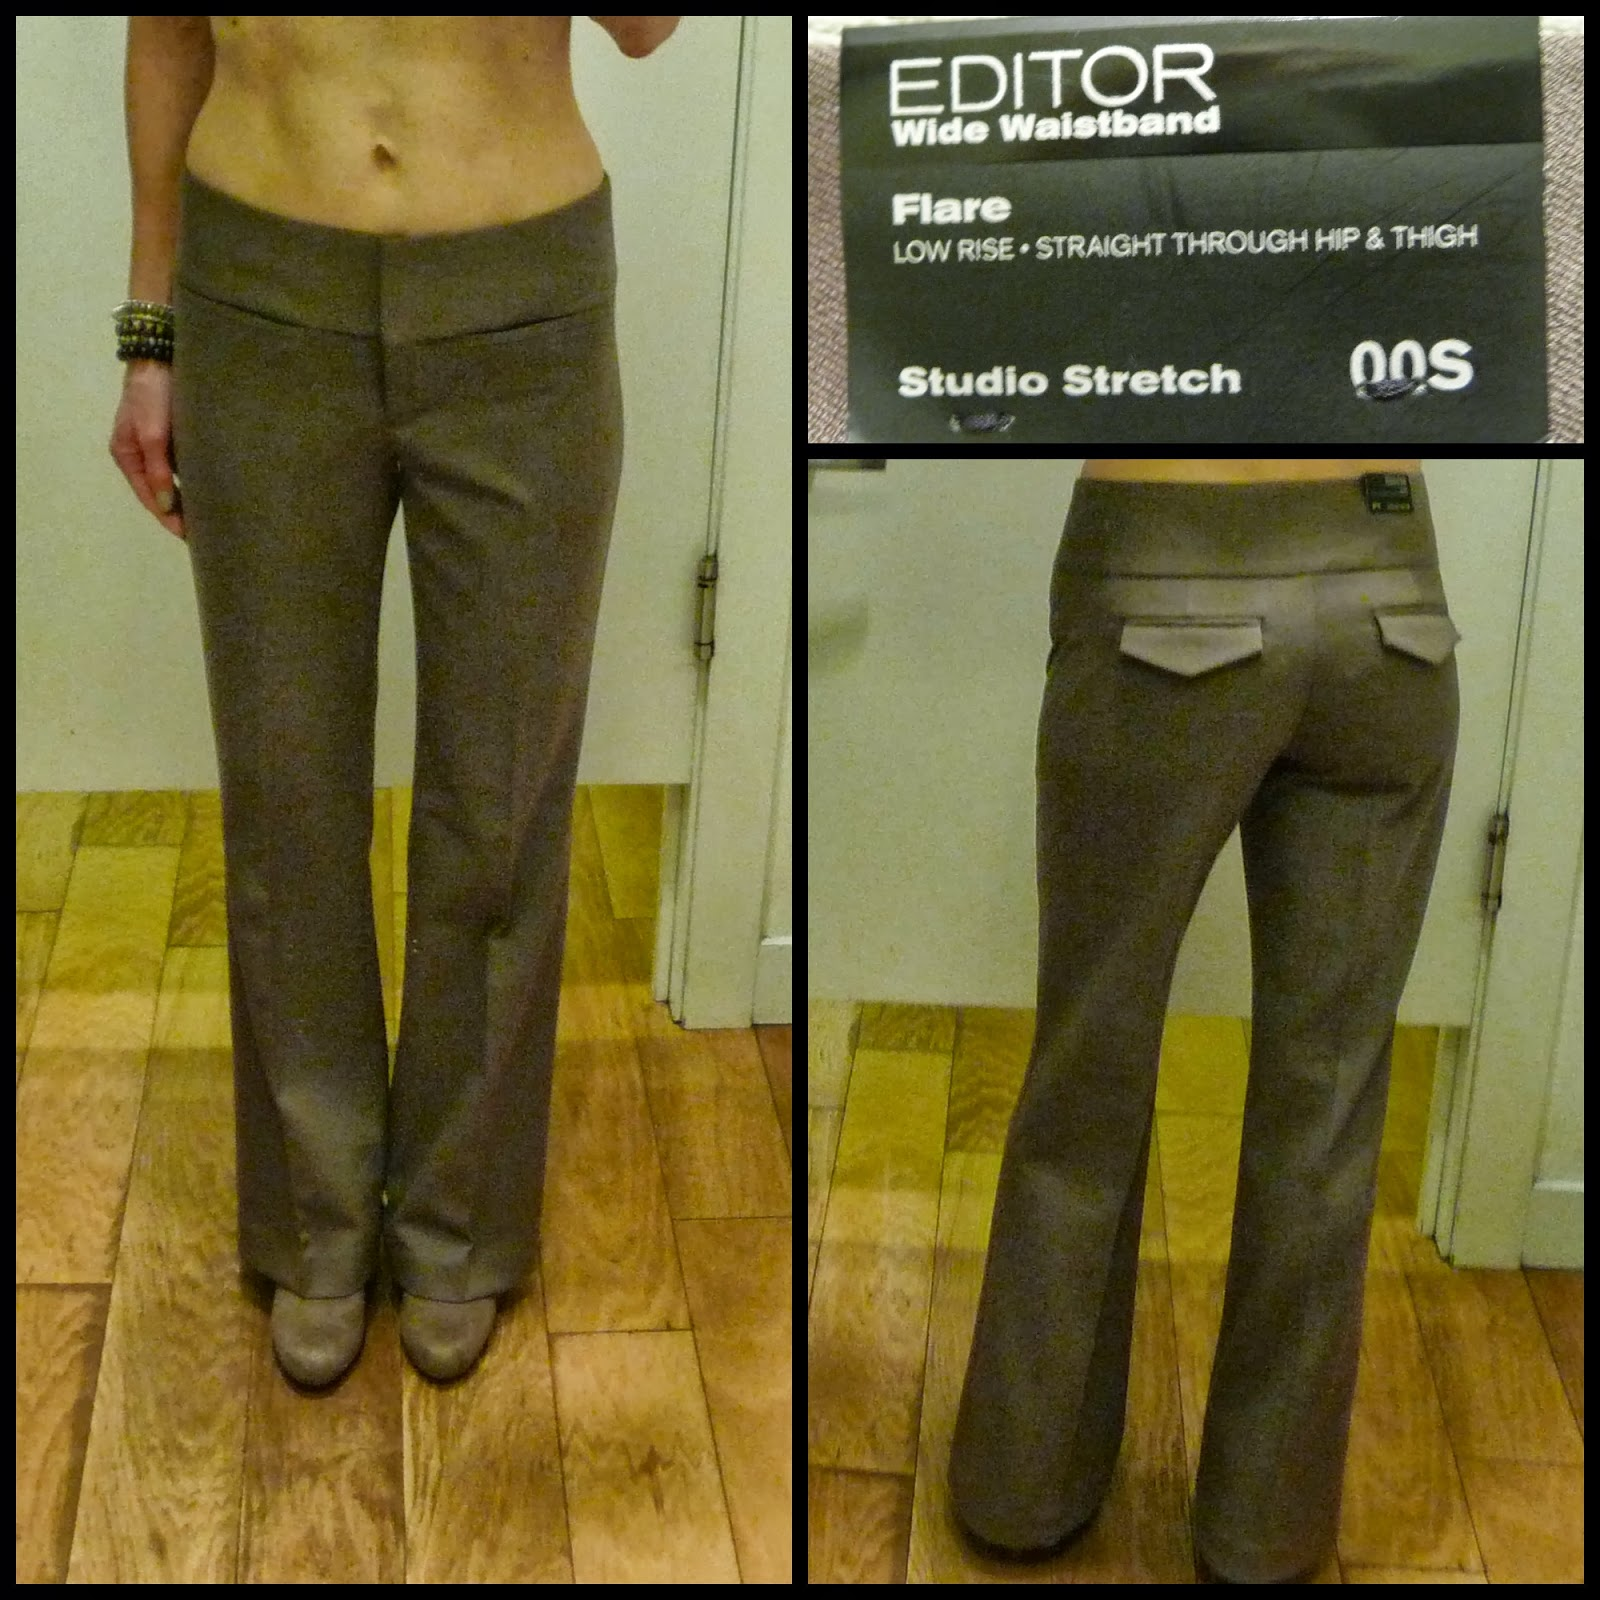 Express Editor Pants, Wide Waistband, Flare, Studio Stretch